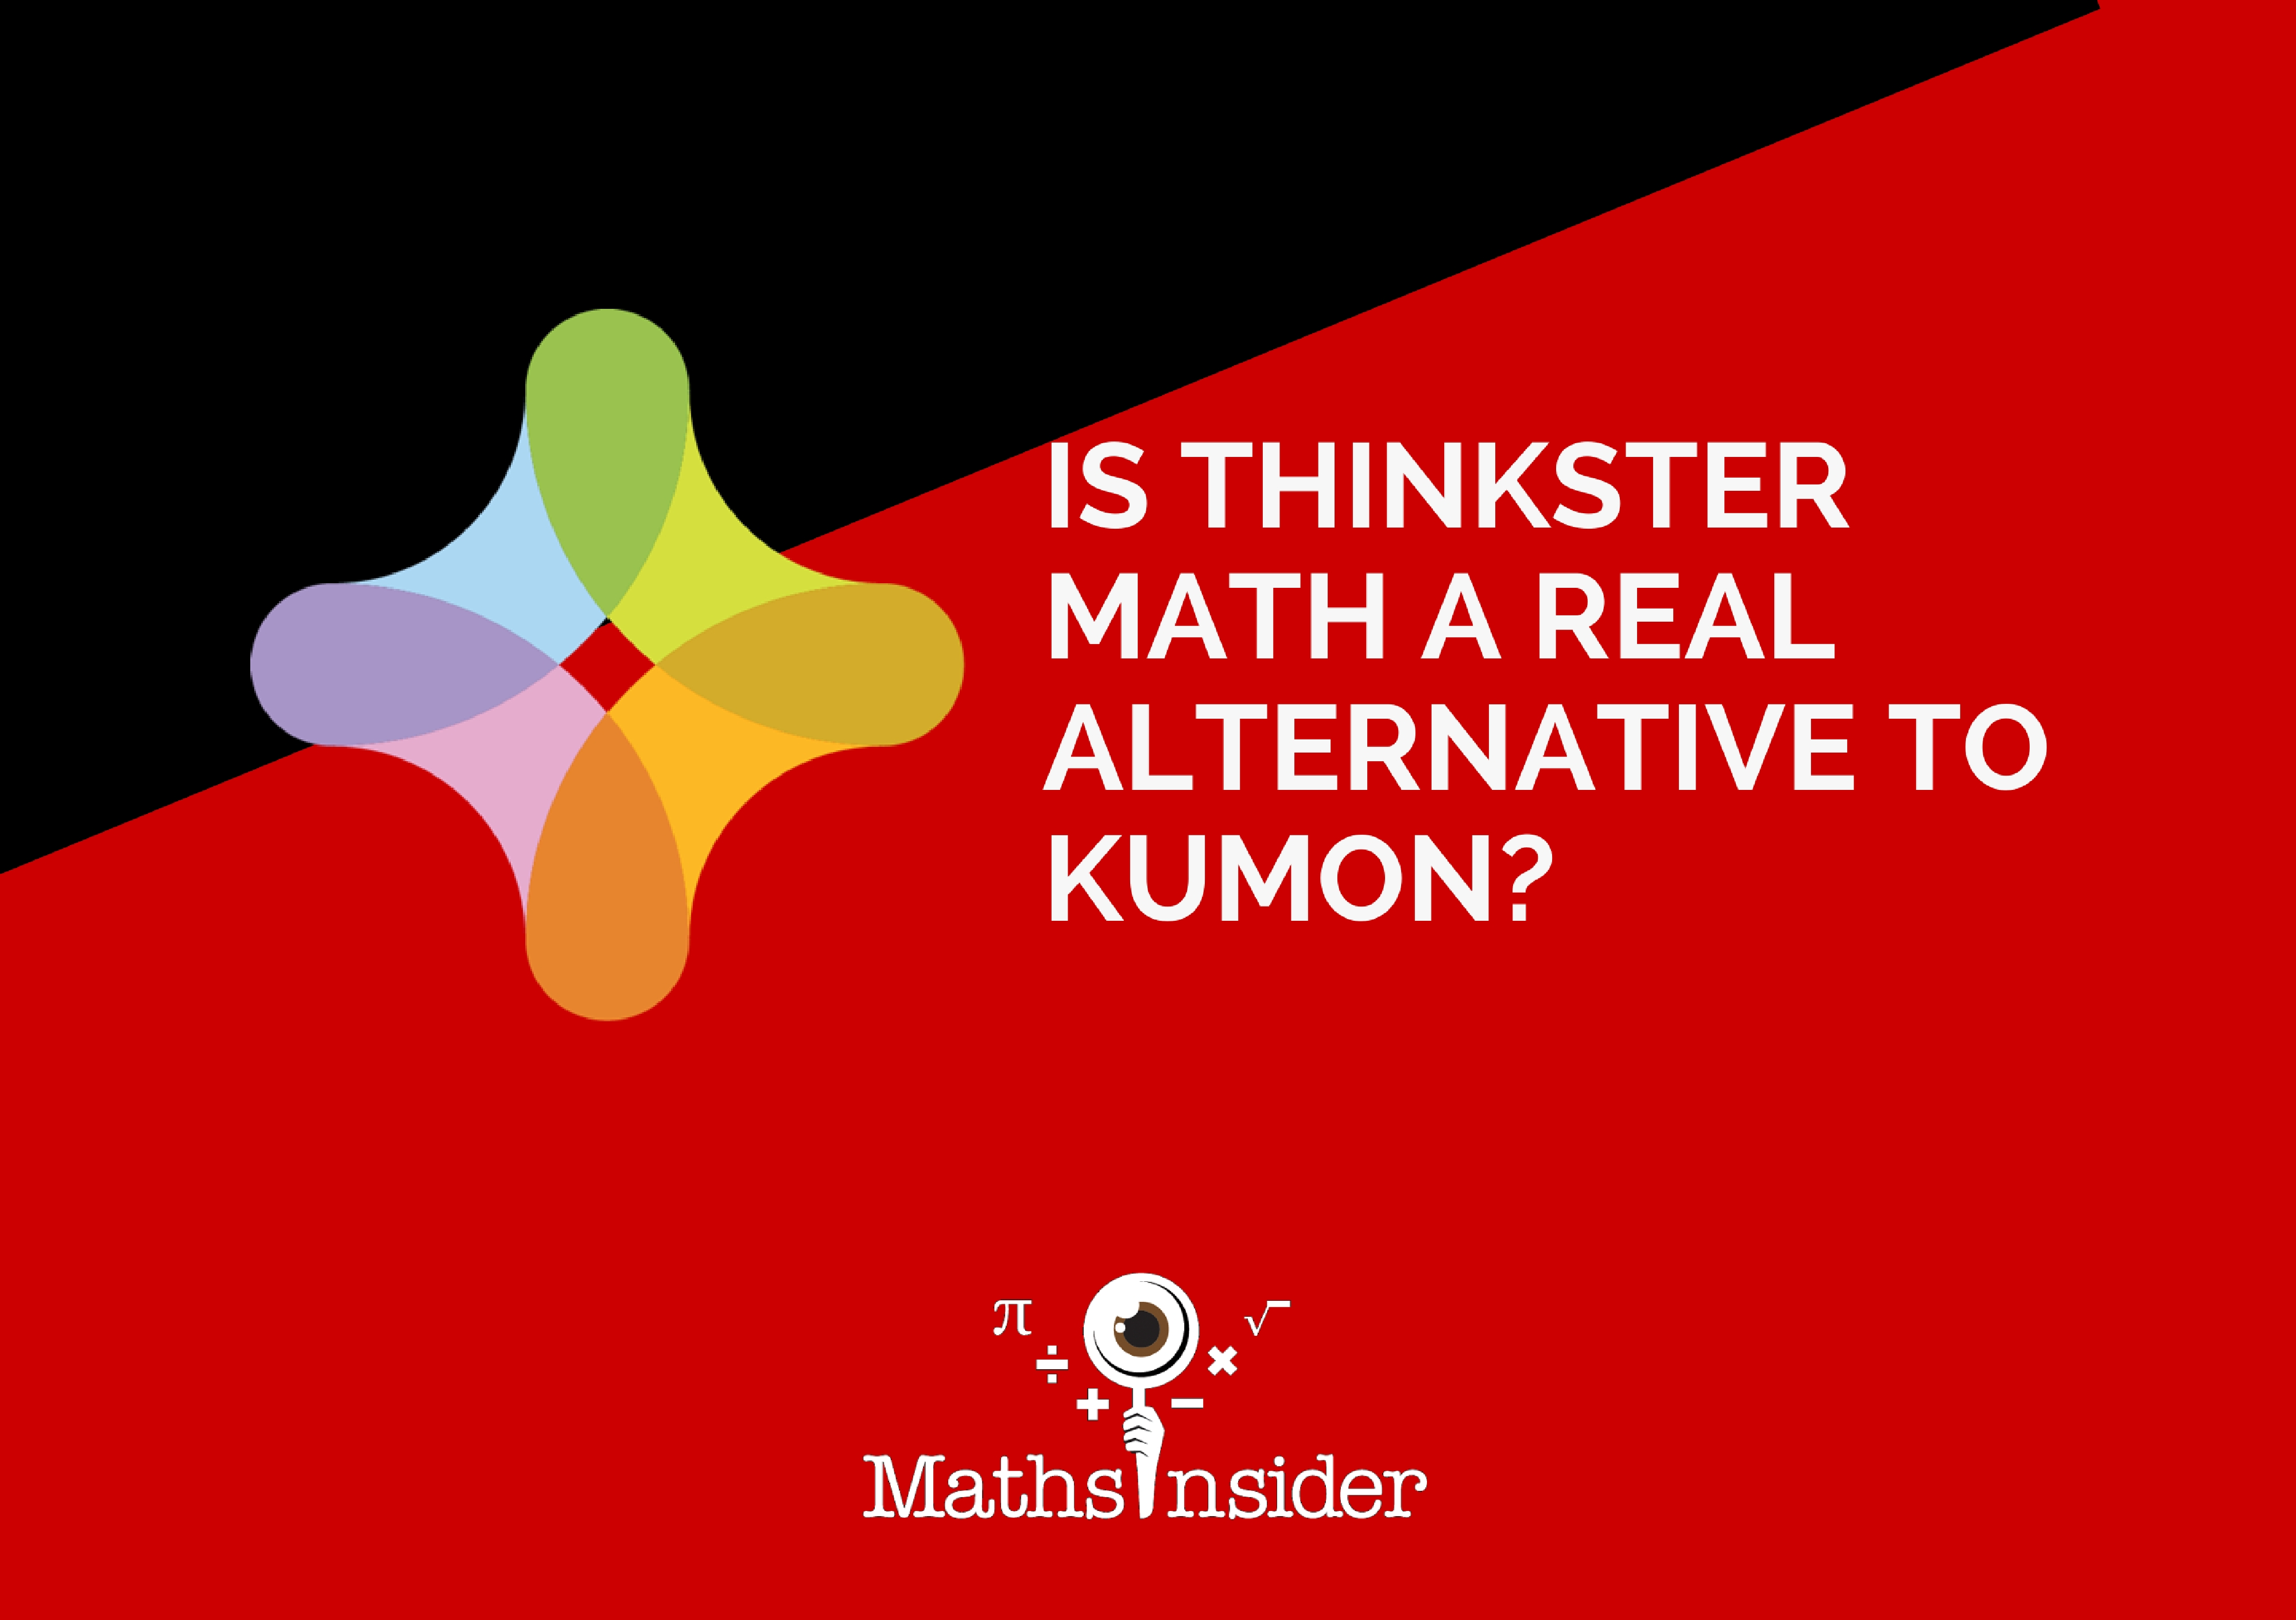 Is Thinkster Math A Real Alternative To Kumon